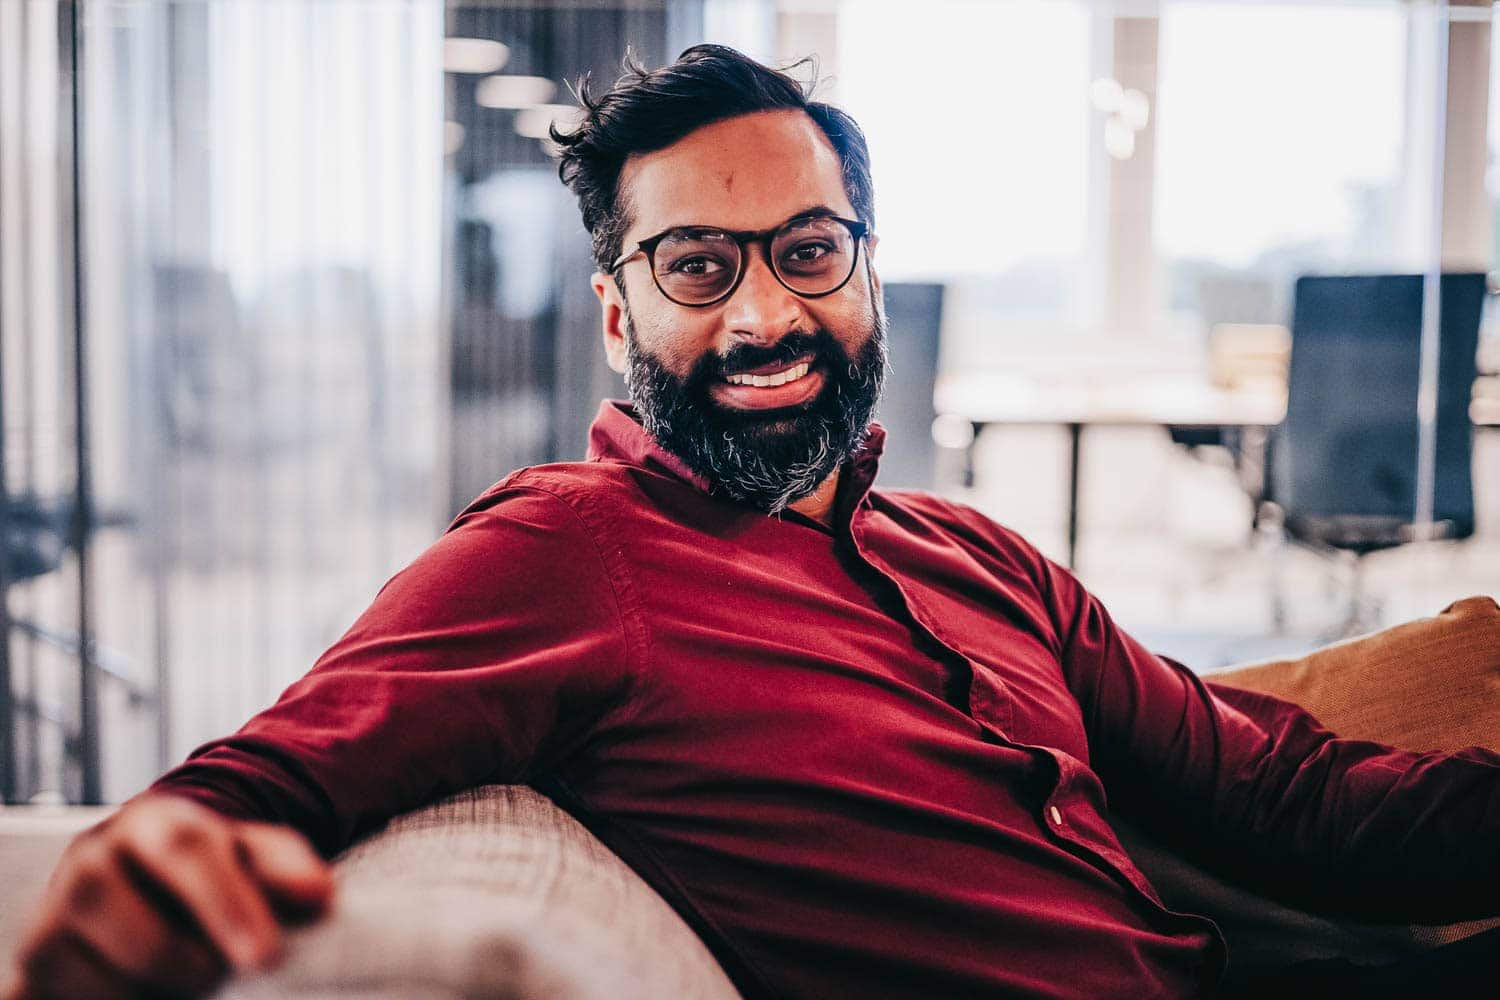 A smiling Rahman sitting on a couch looks into the camera.